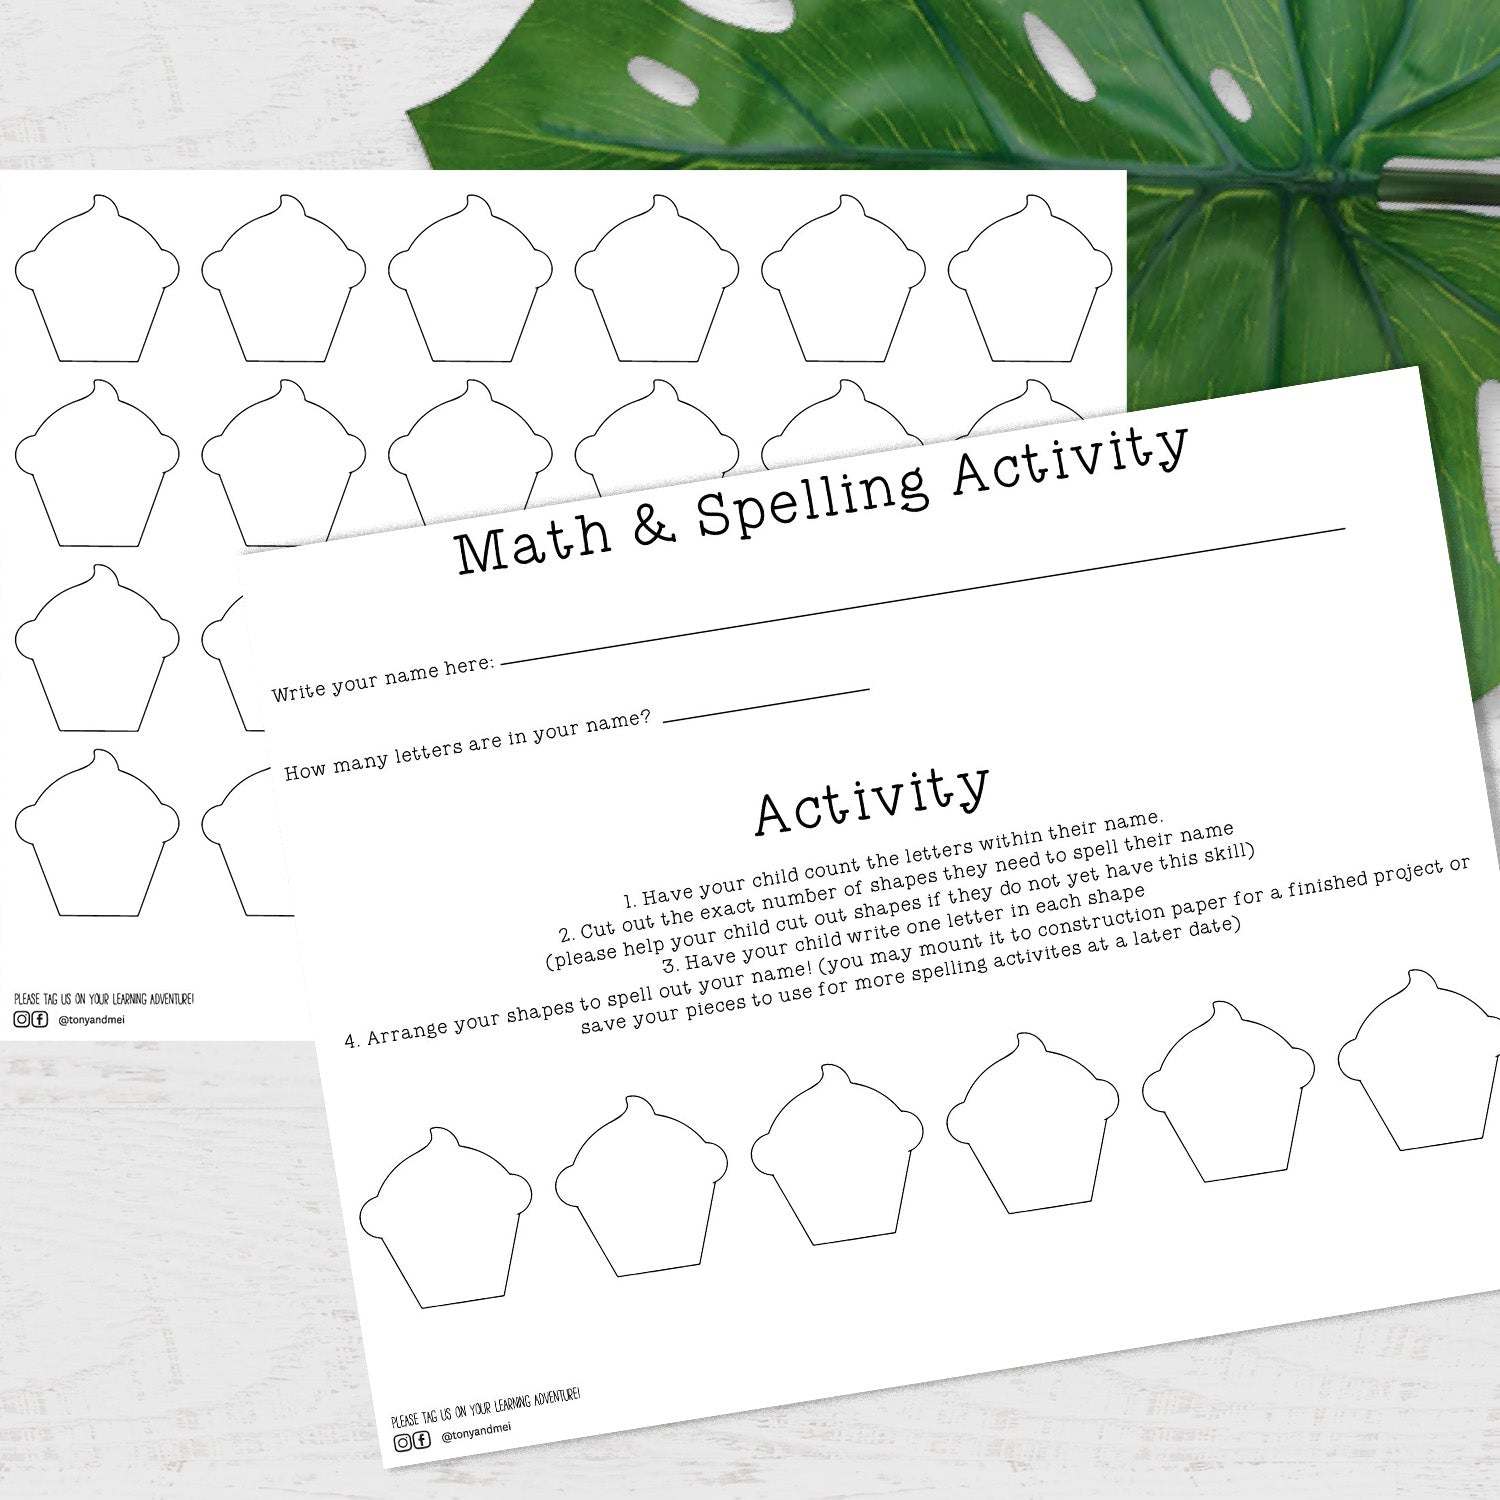 Math & Spelling Activity Printable - Cupcakes